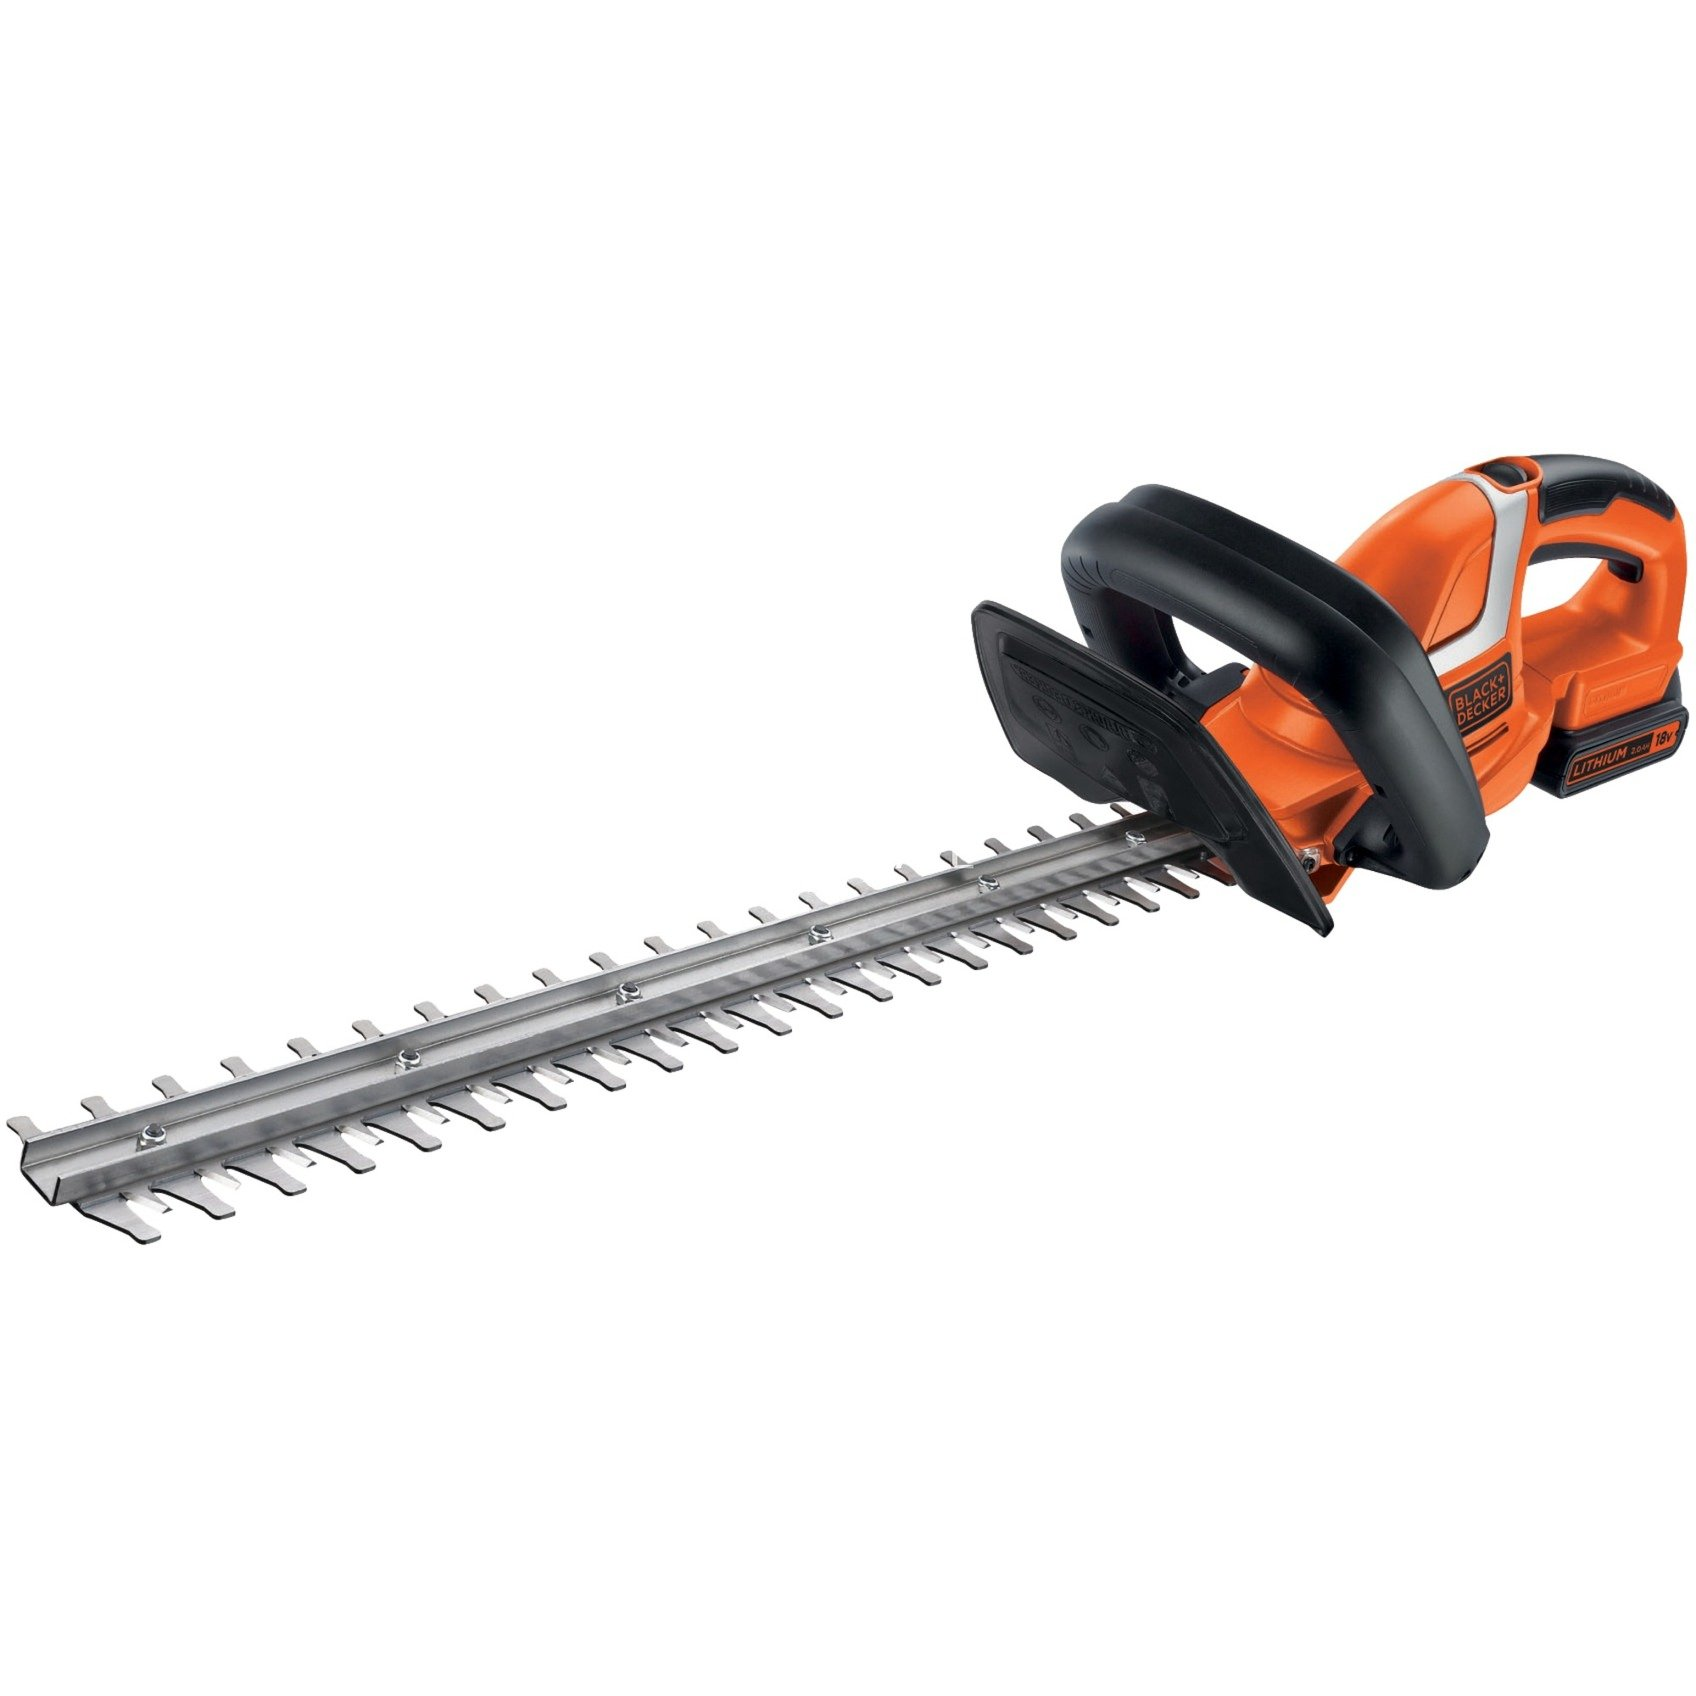 Smart BLACK+DECKER Hækkeklipper, 18V Li-Ion - GTC1845L20-QW Orange/Sort UK31